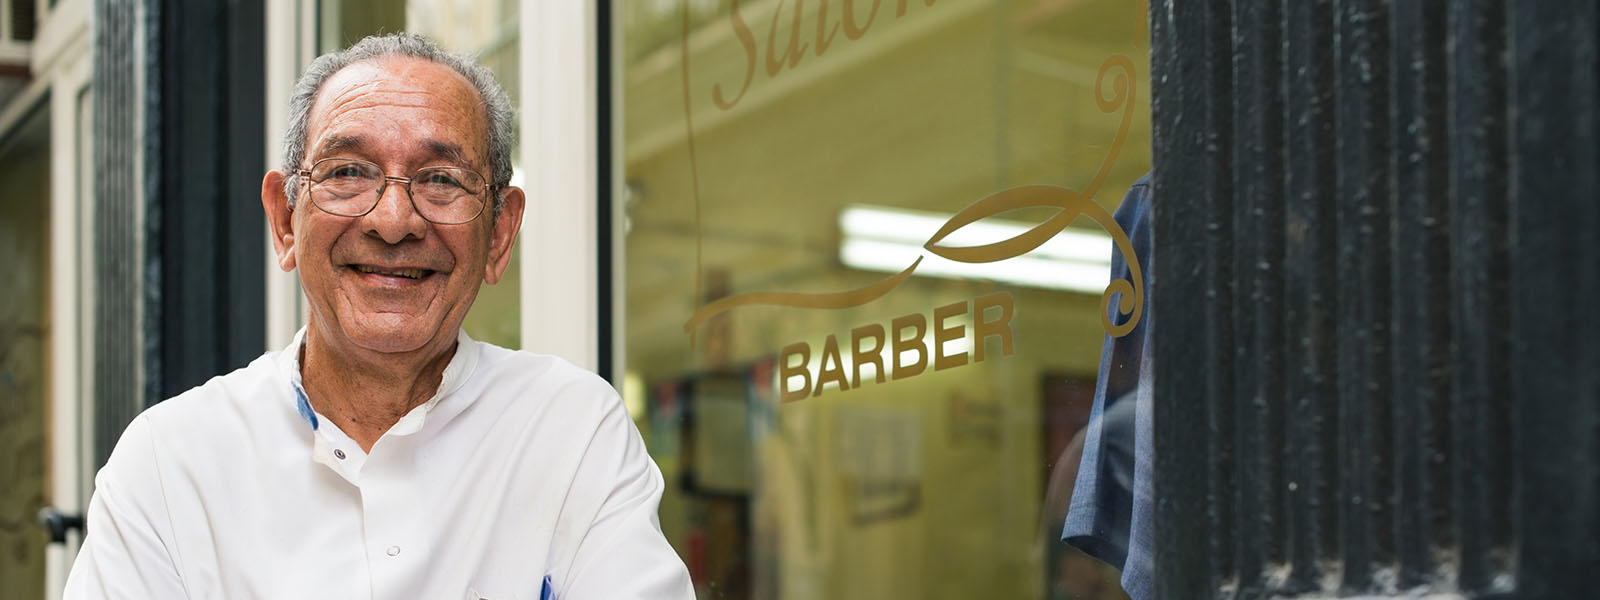 Man standing in front of barber shop